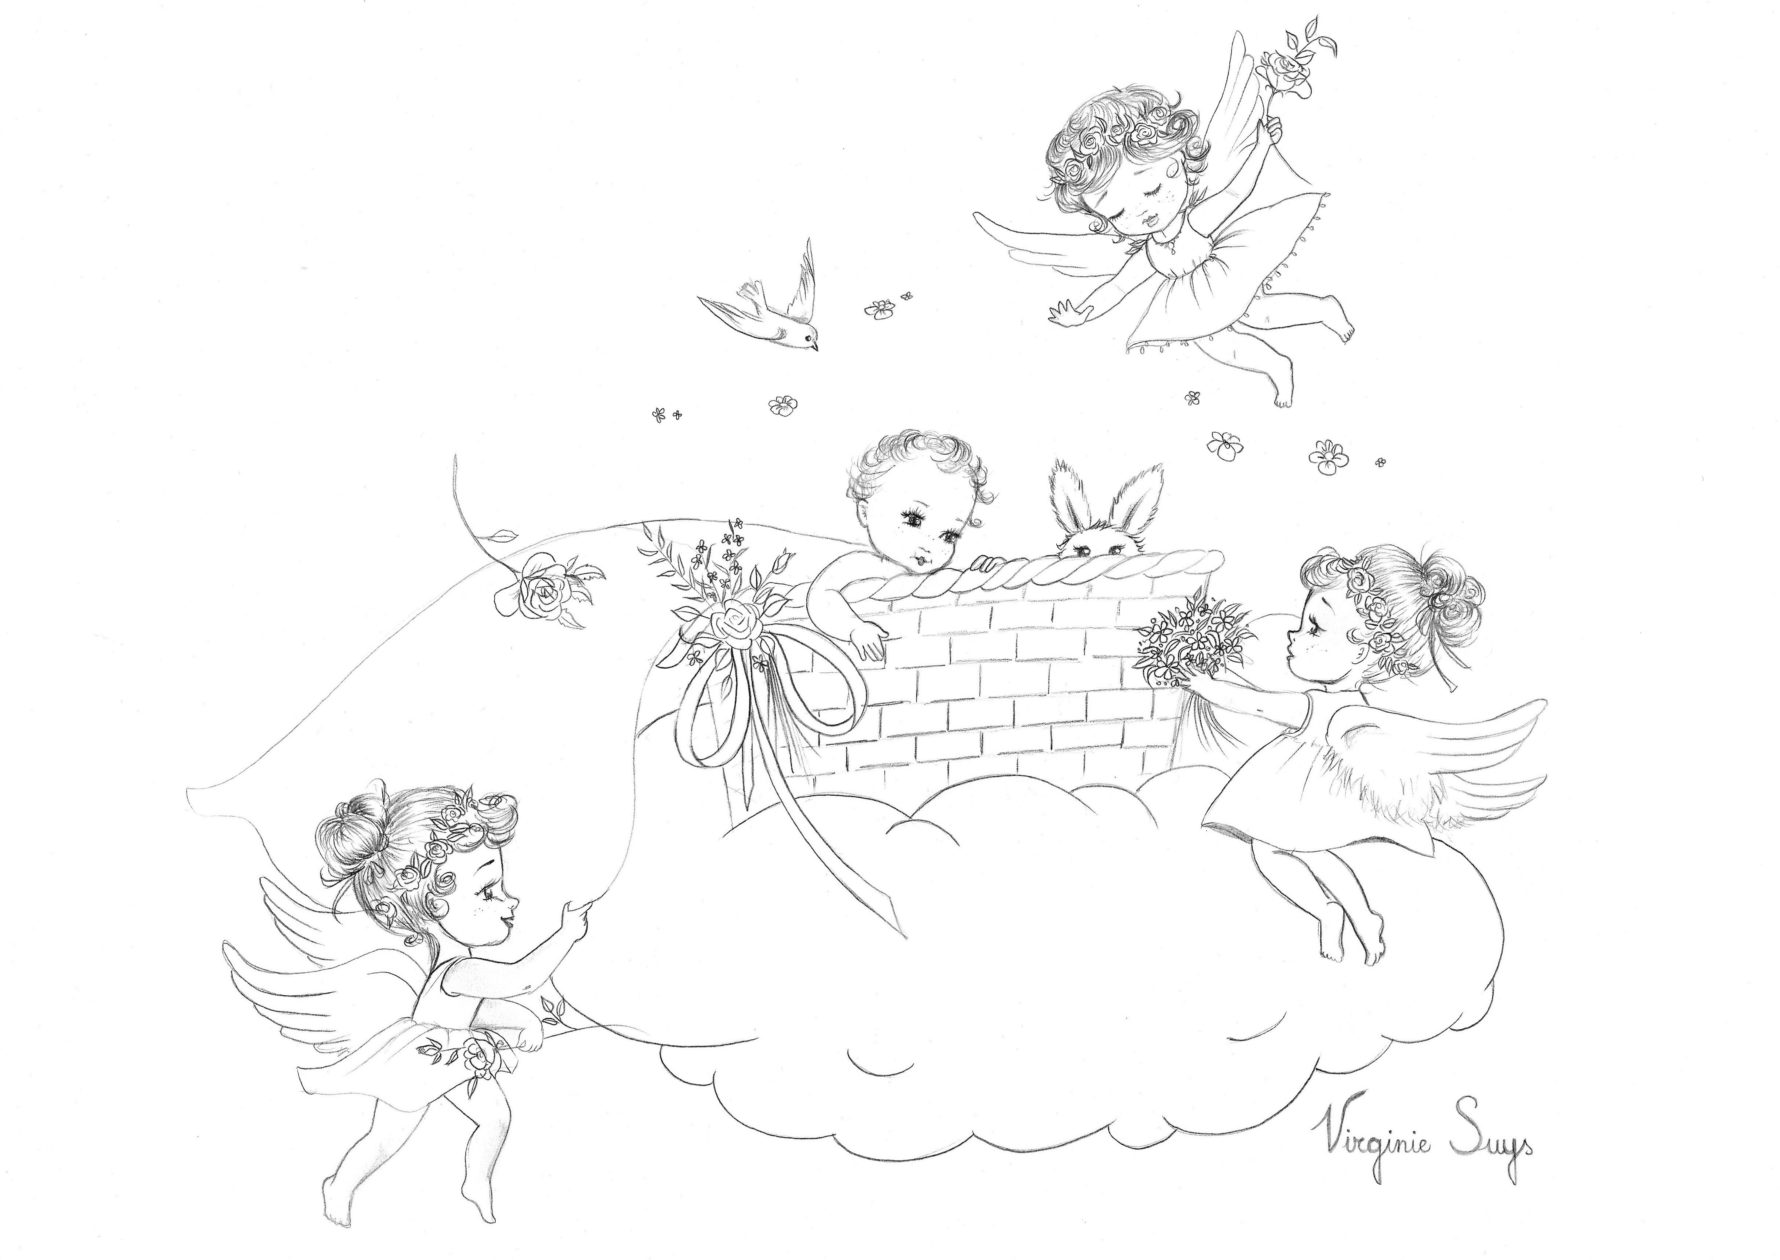 Virginie Suys Angels in heaven in black & white illustration